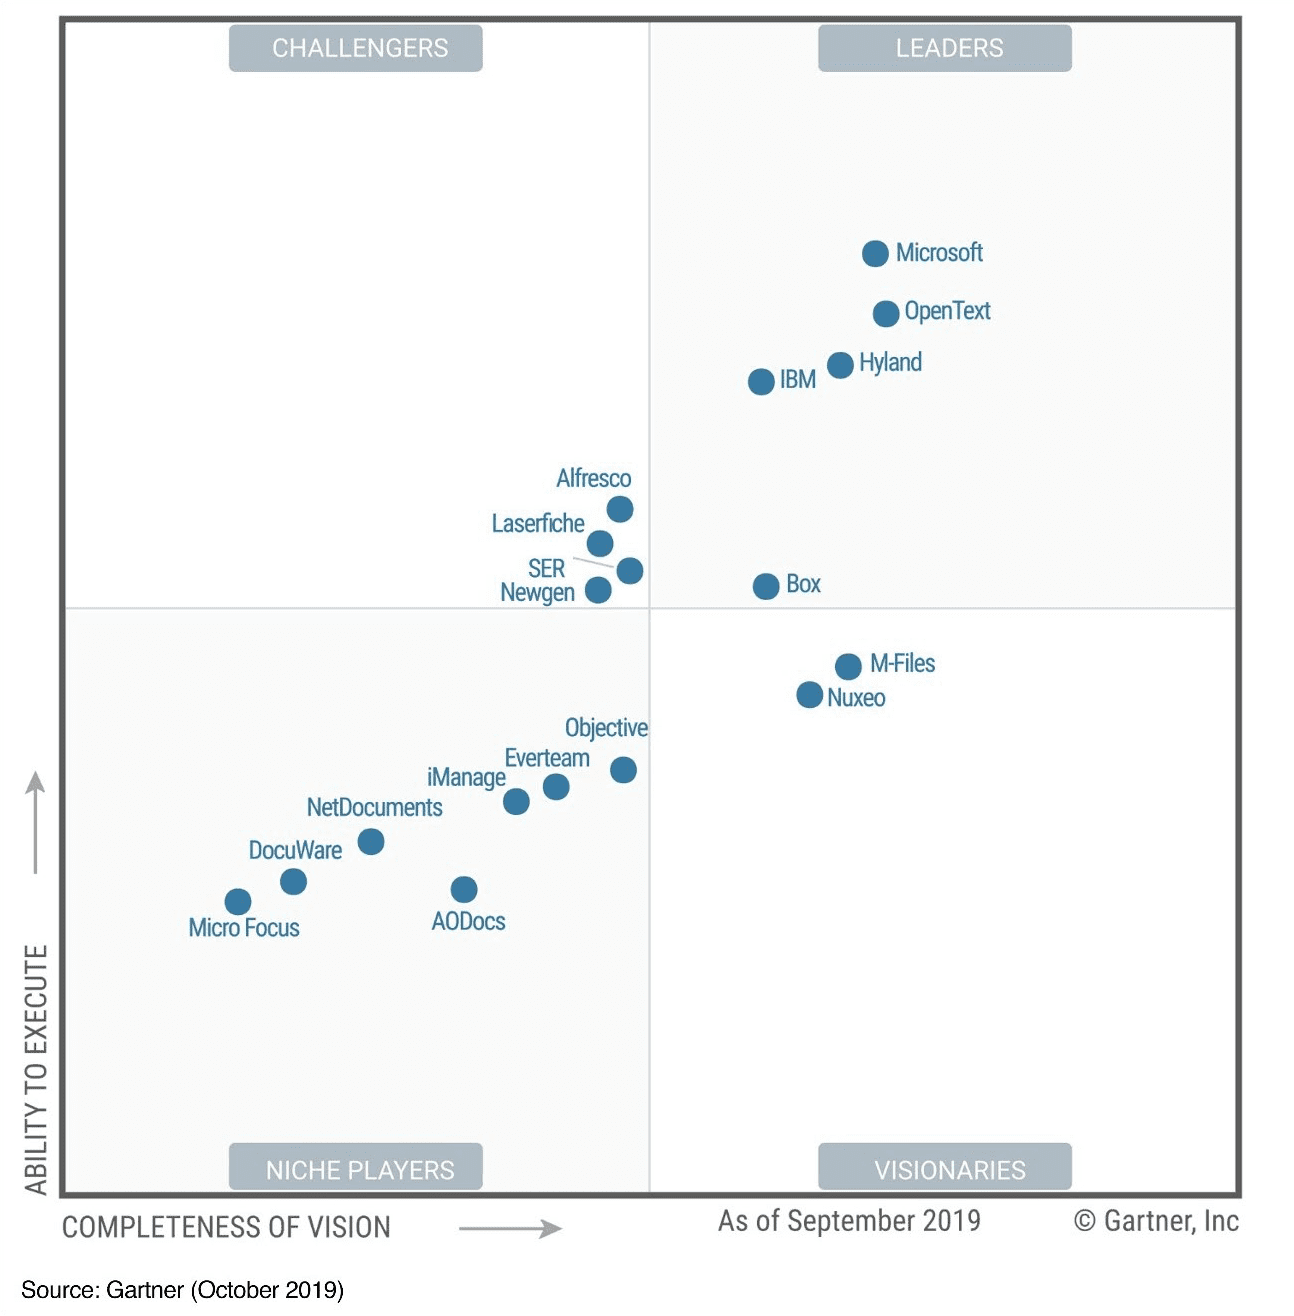 Image of the Gartner Magic Quadrant showing Microsoft as a Leader, number one in Ability to Execute.